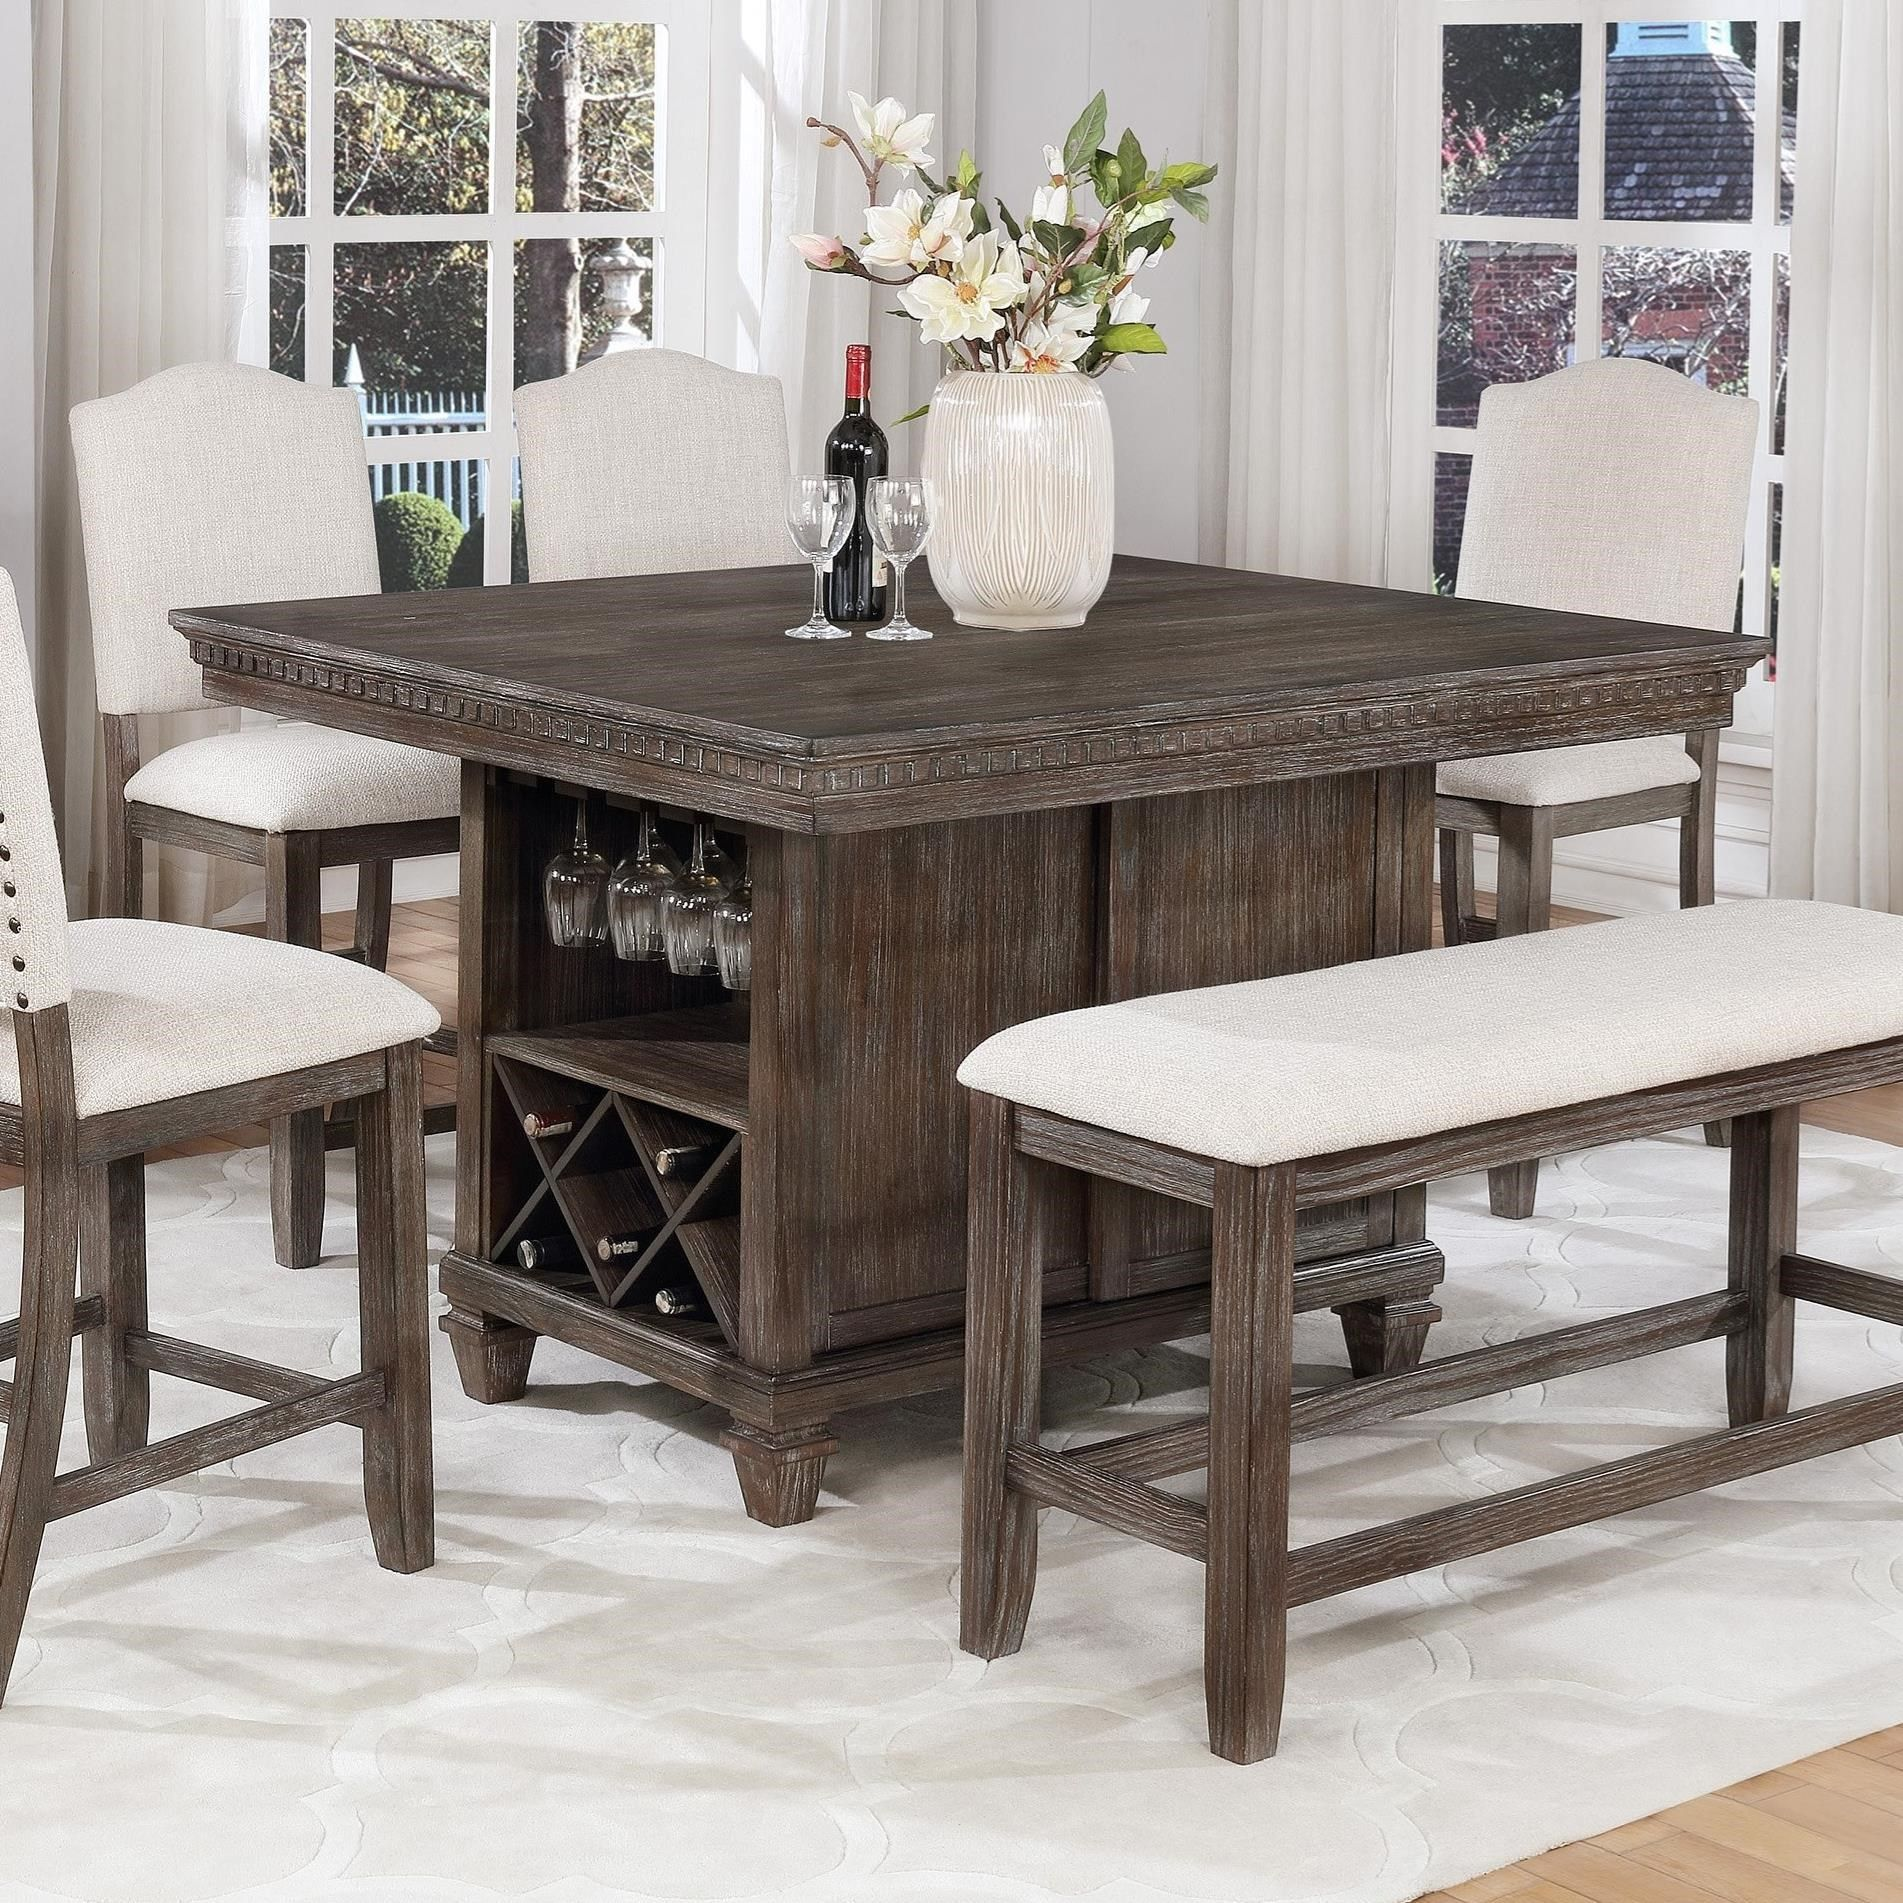 Regent Counter Height Table With Built In Wine Storage By Crown Mark At Wayside Furniture In 2020 Dining Room Sets Dining Table Decor Dining Table With Storage